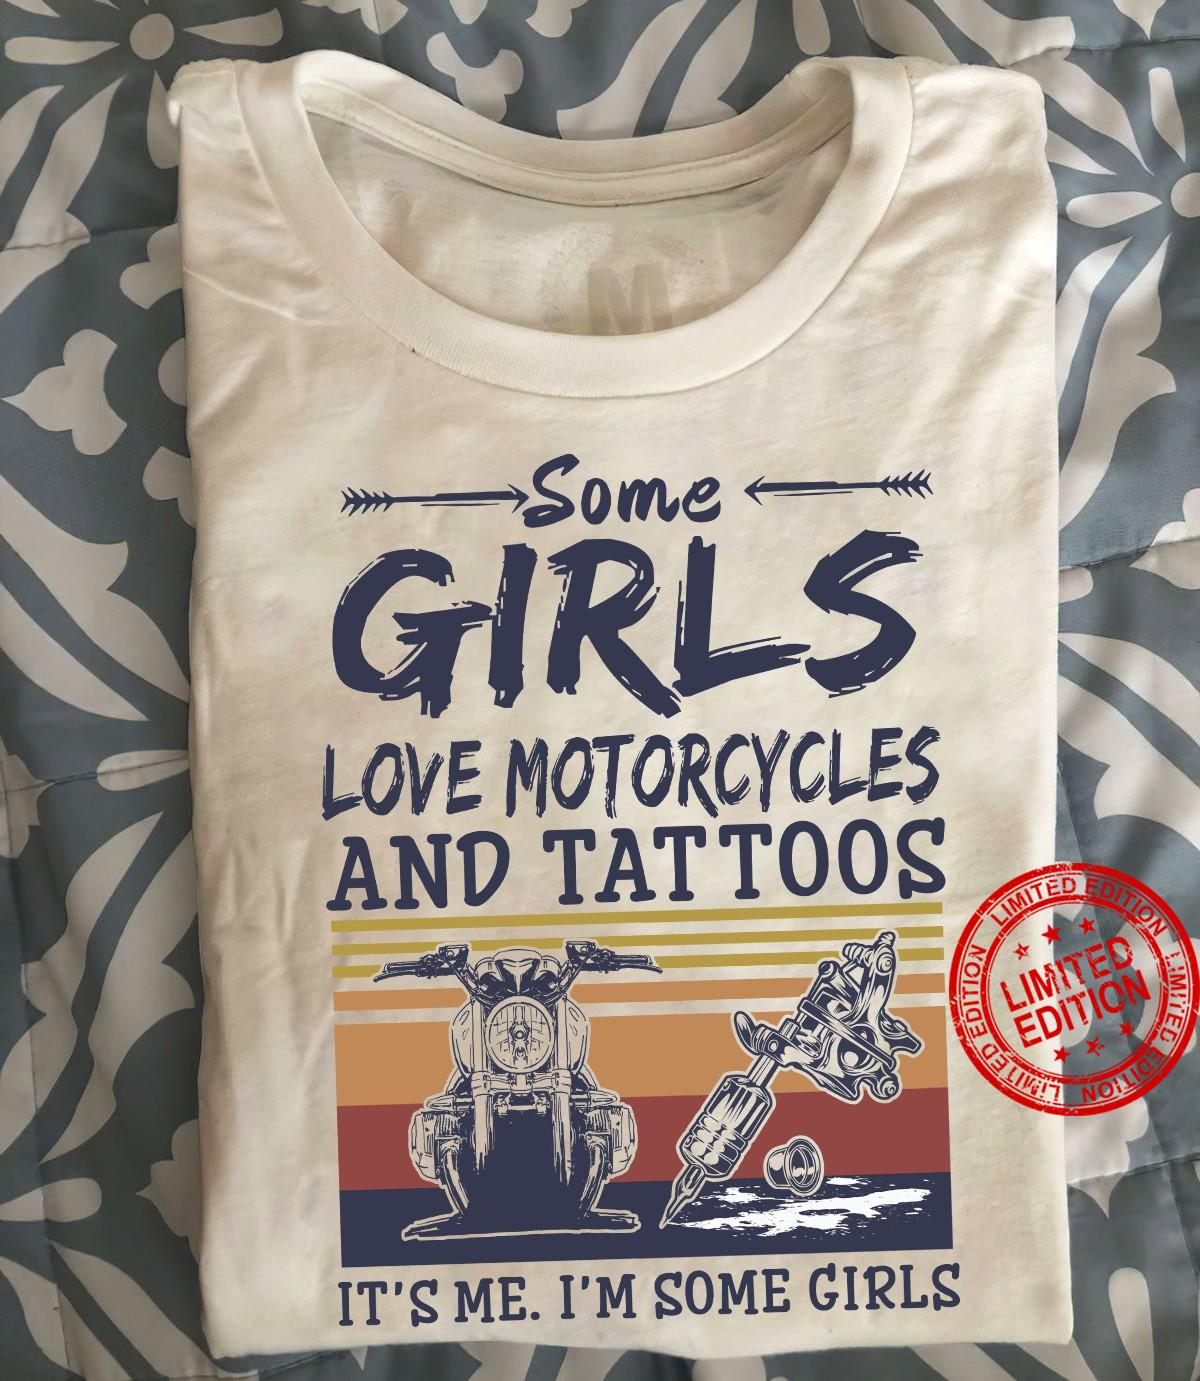 Some Girls Love Motorcycles And Tattoos It's Me It's Some Girls Shirt